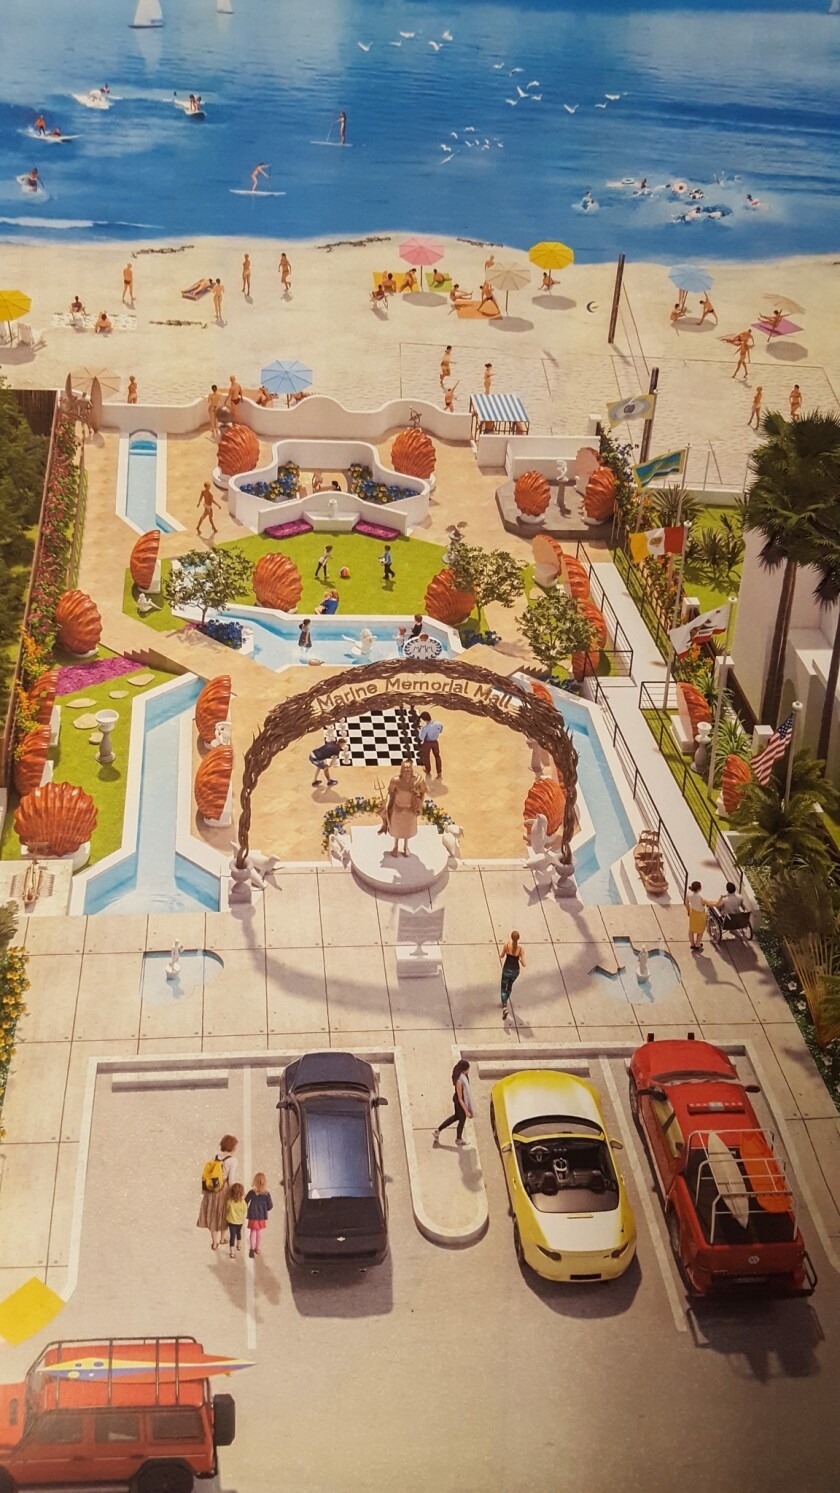 Renderings of the proposed Marine Memorial Mall show the placement of orange clam-shaped seating and blue waterways throughout the park.